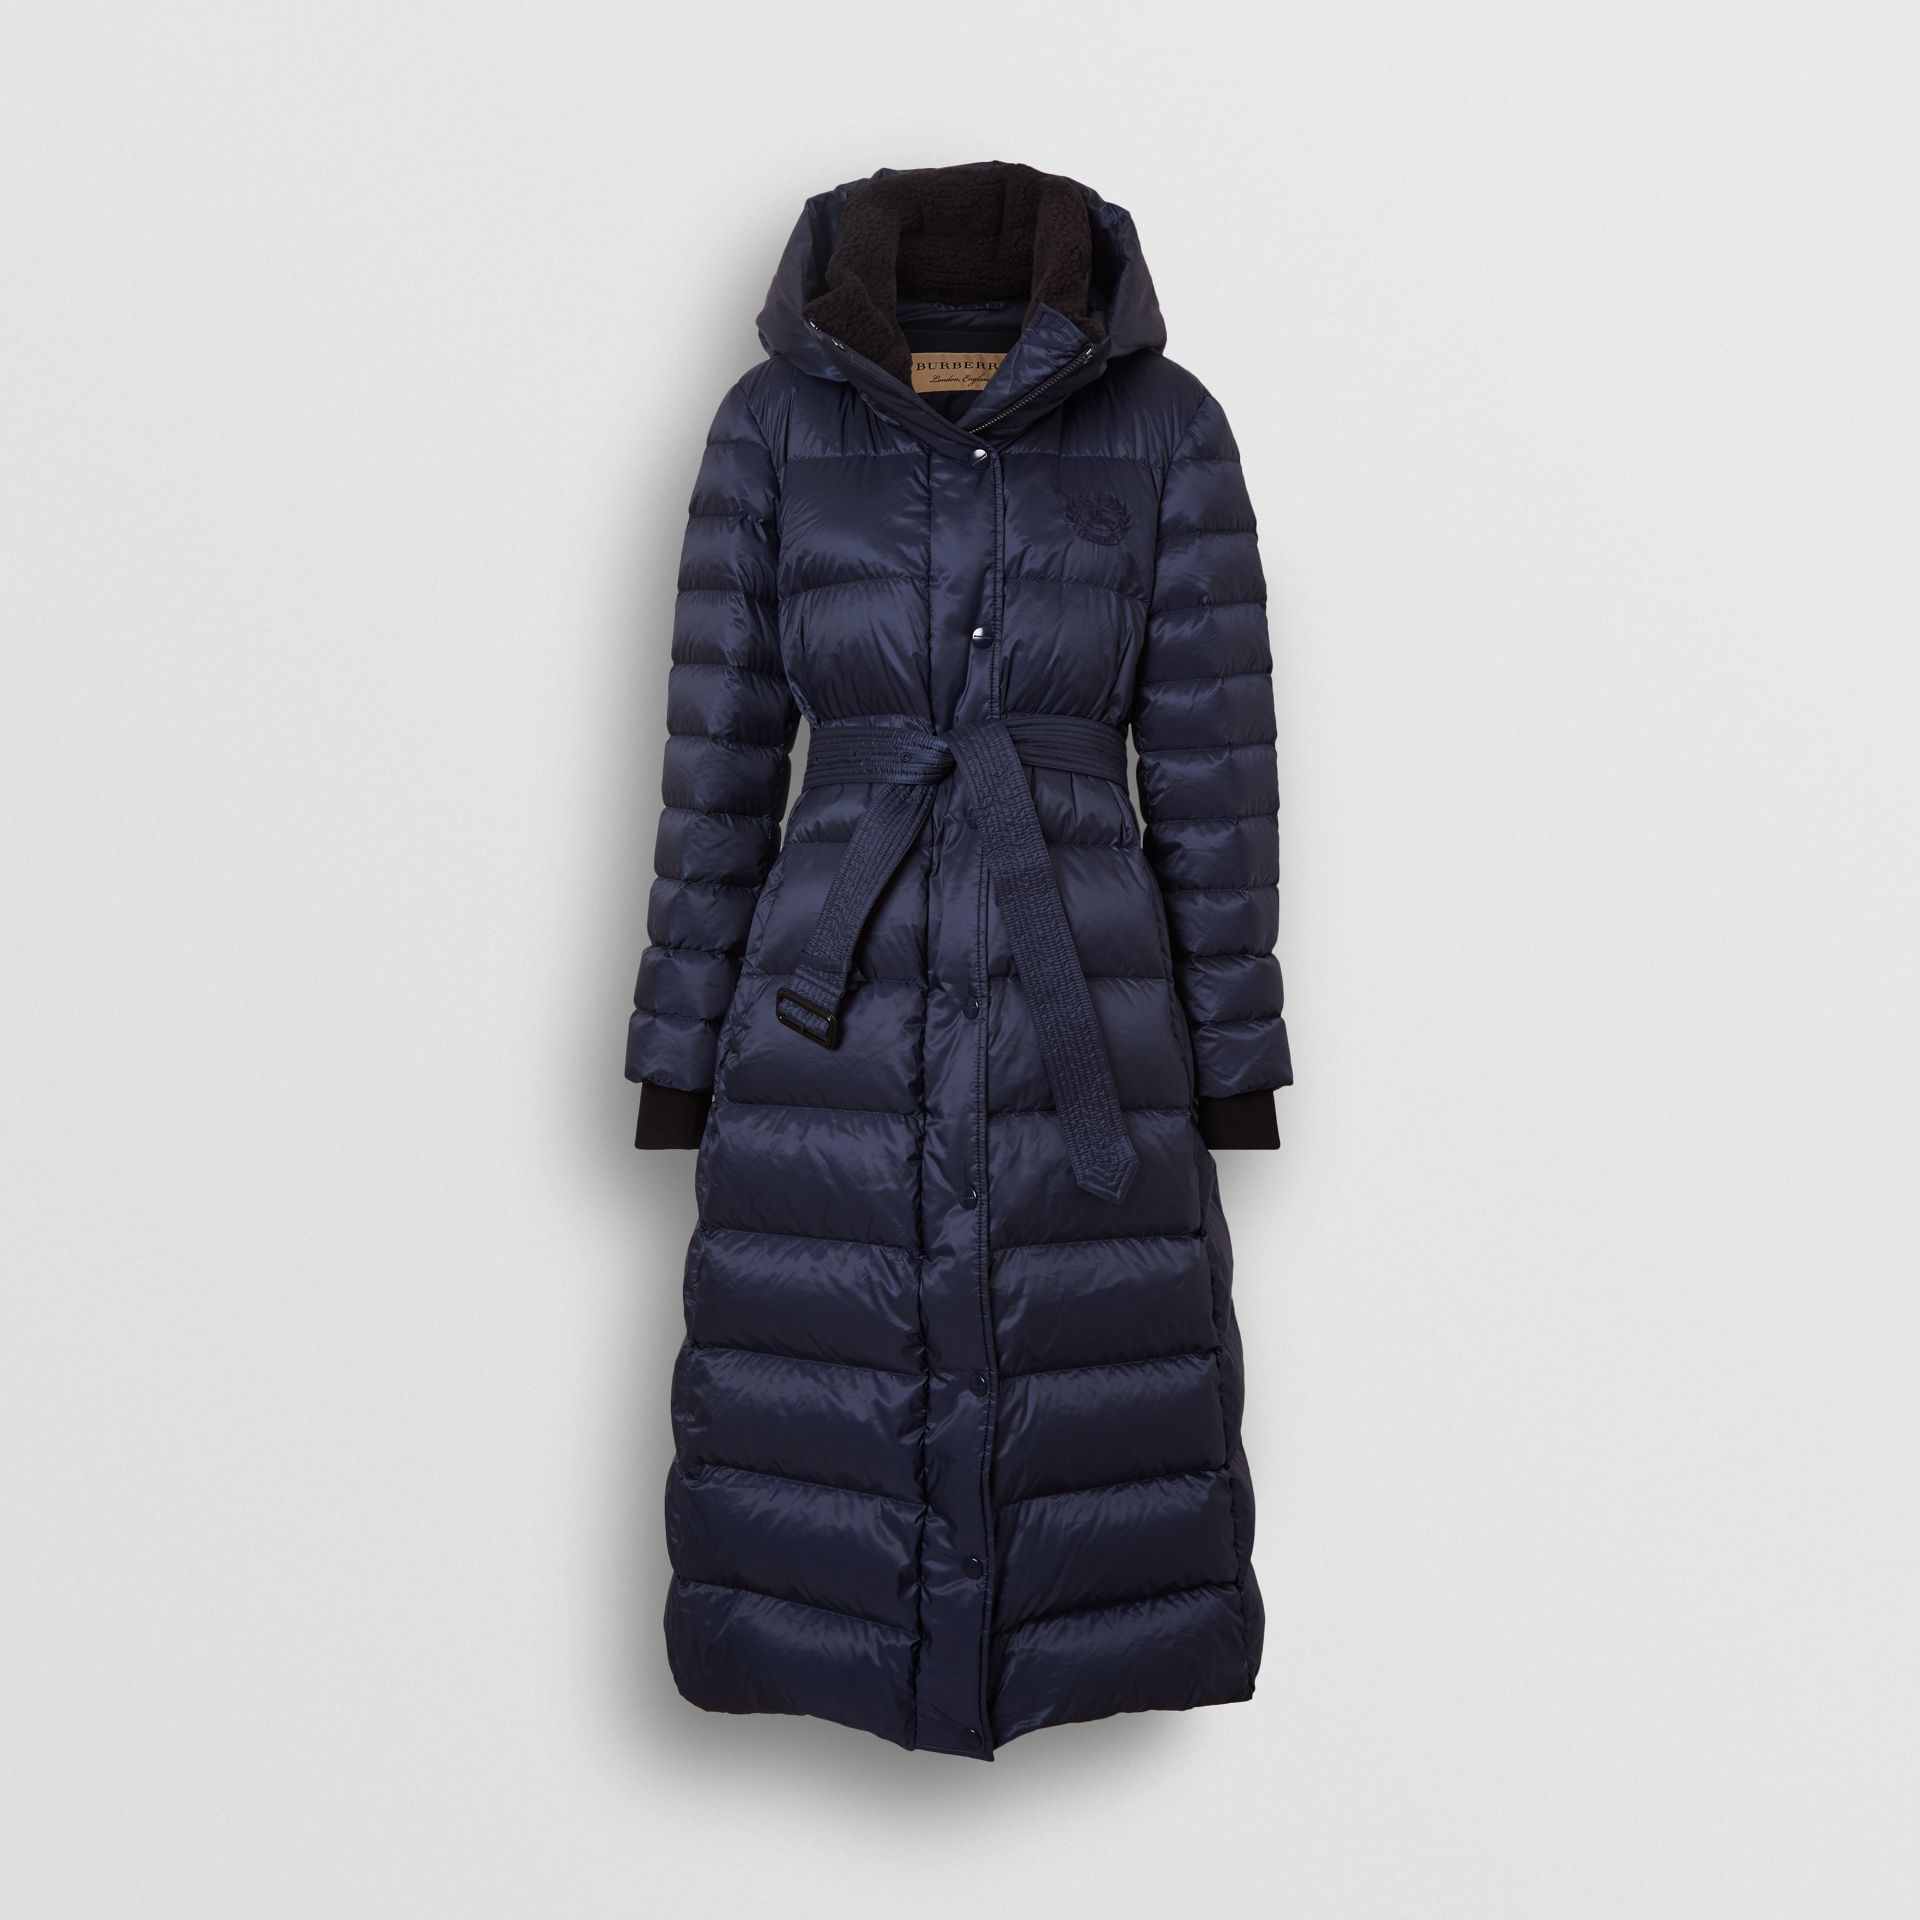 Down-filled Hooded Puffer Coat in Navy - Women | Burberry United States - gallery image 3